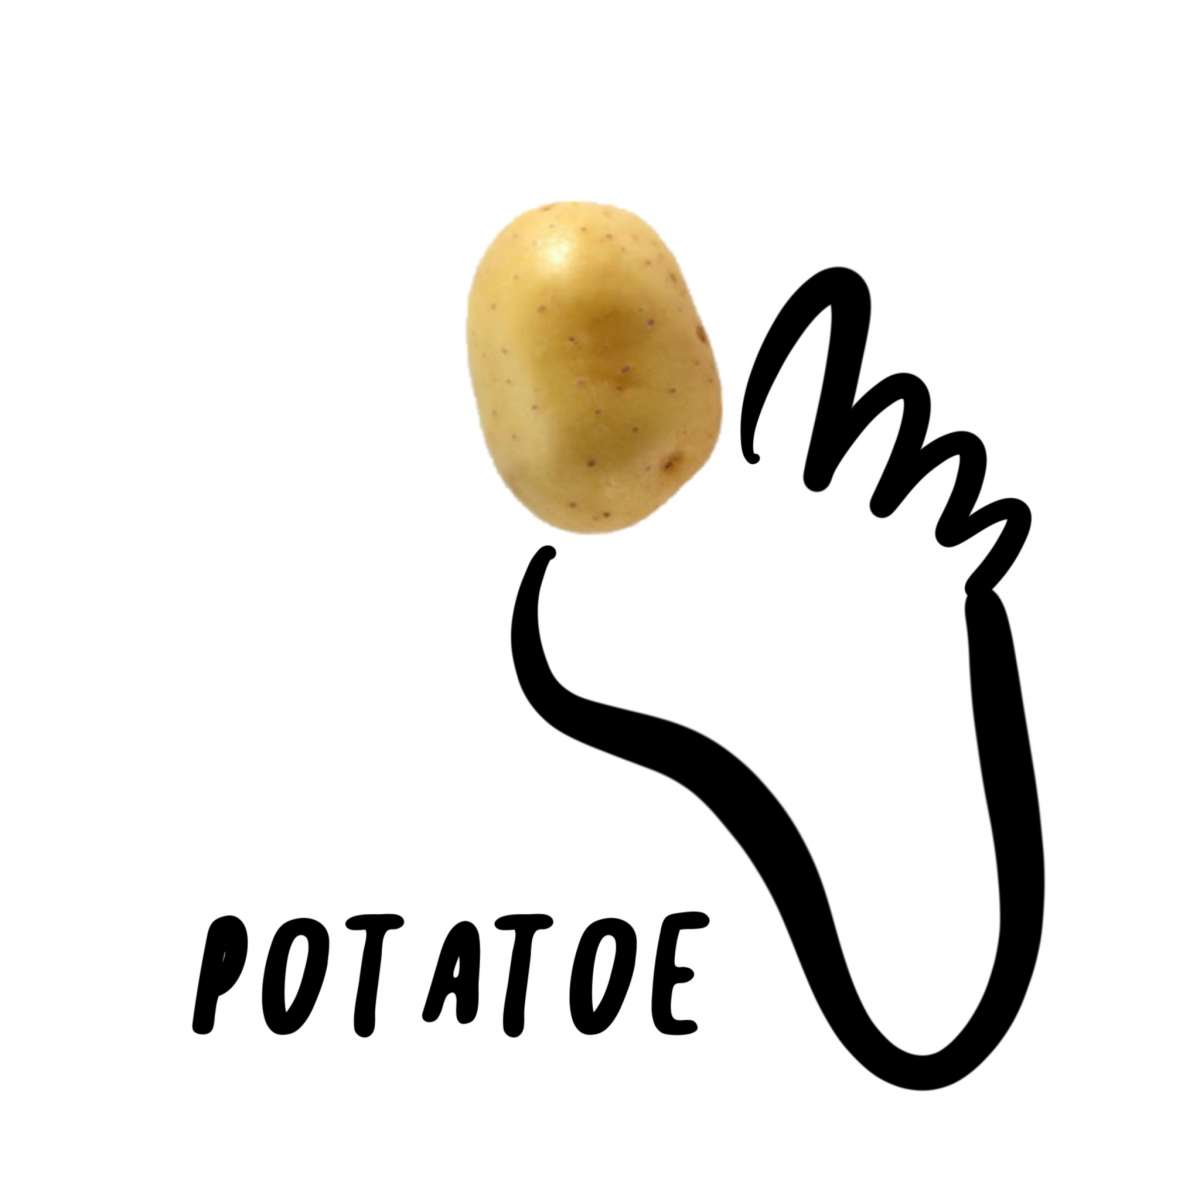 Potatoe